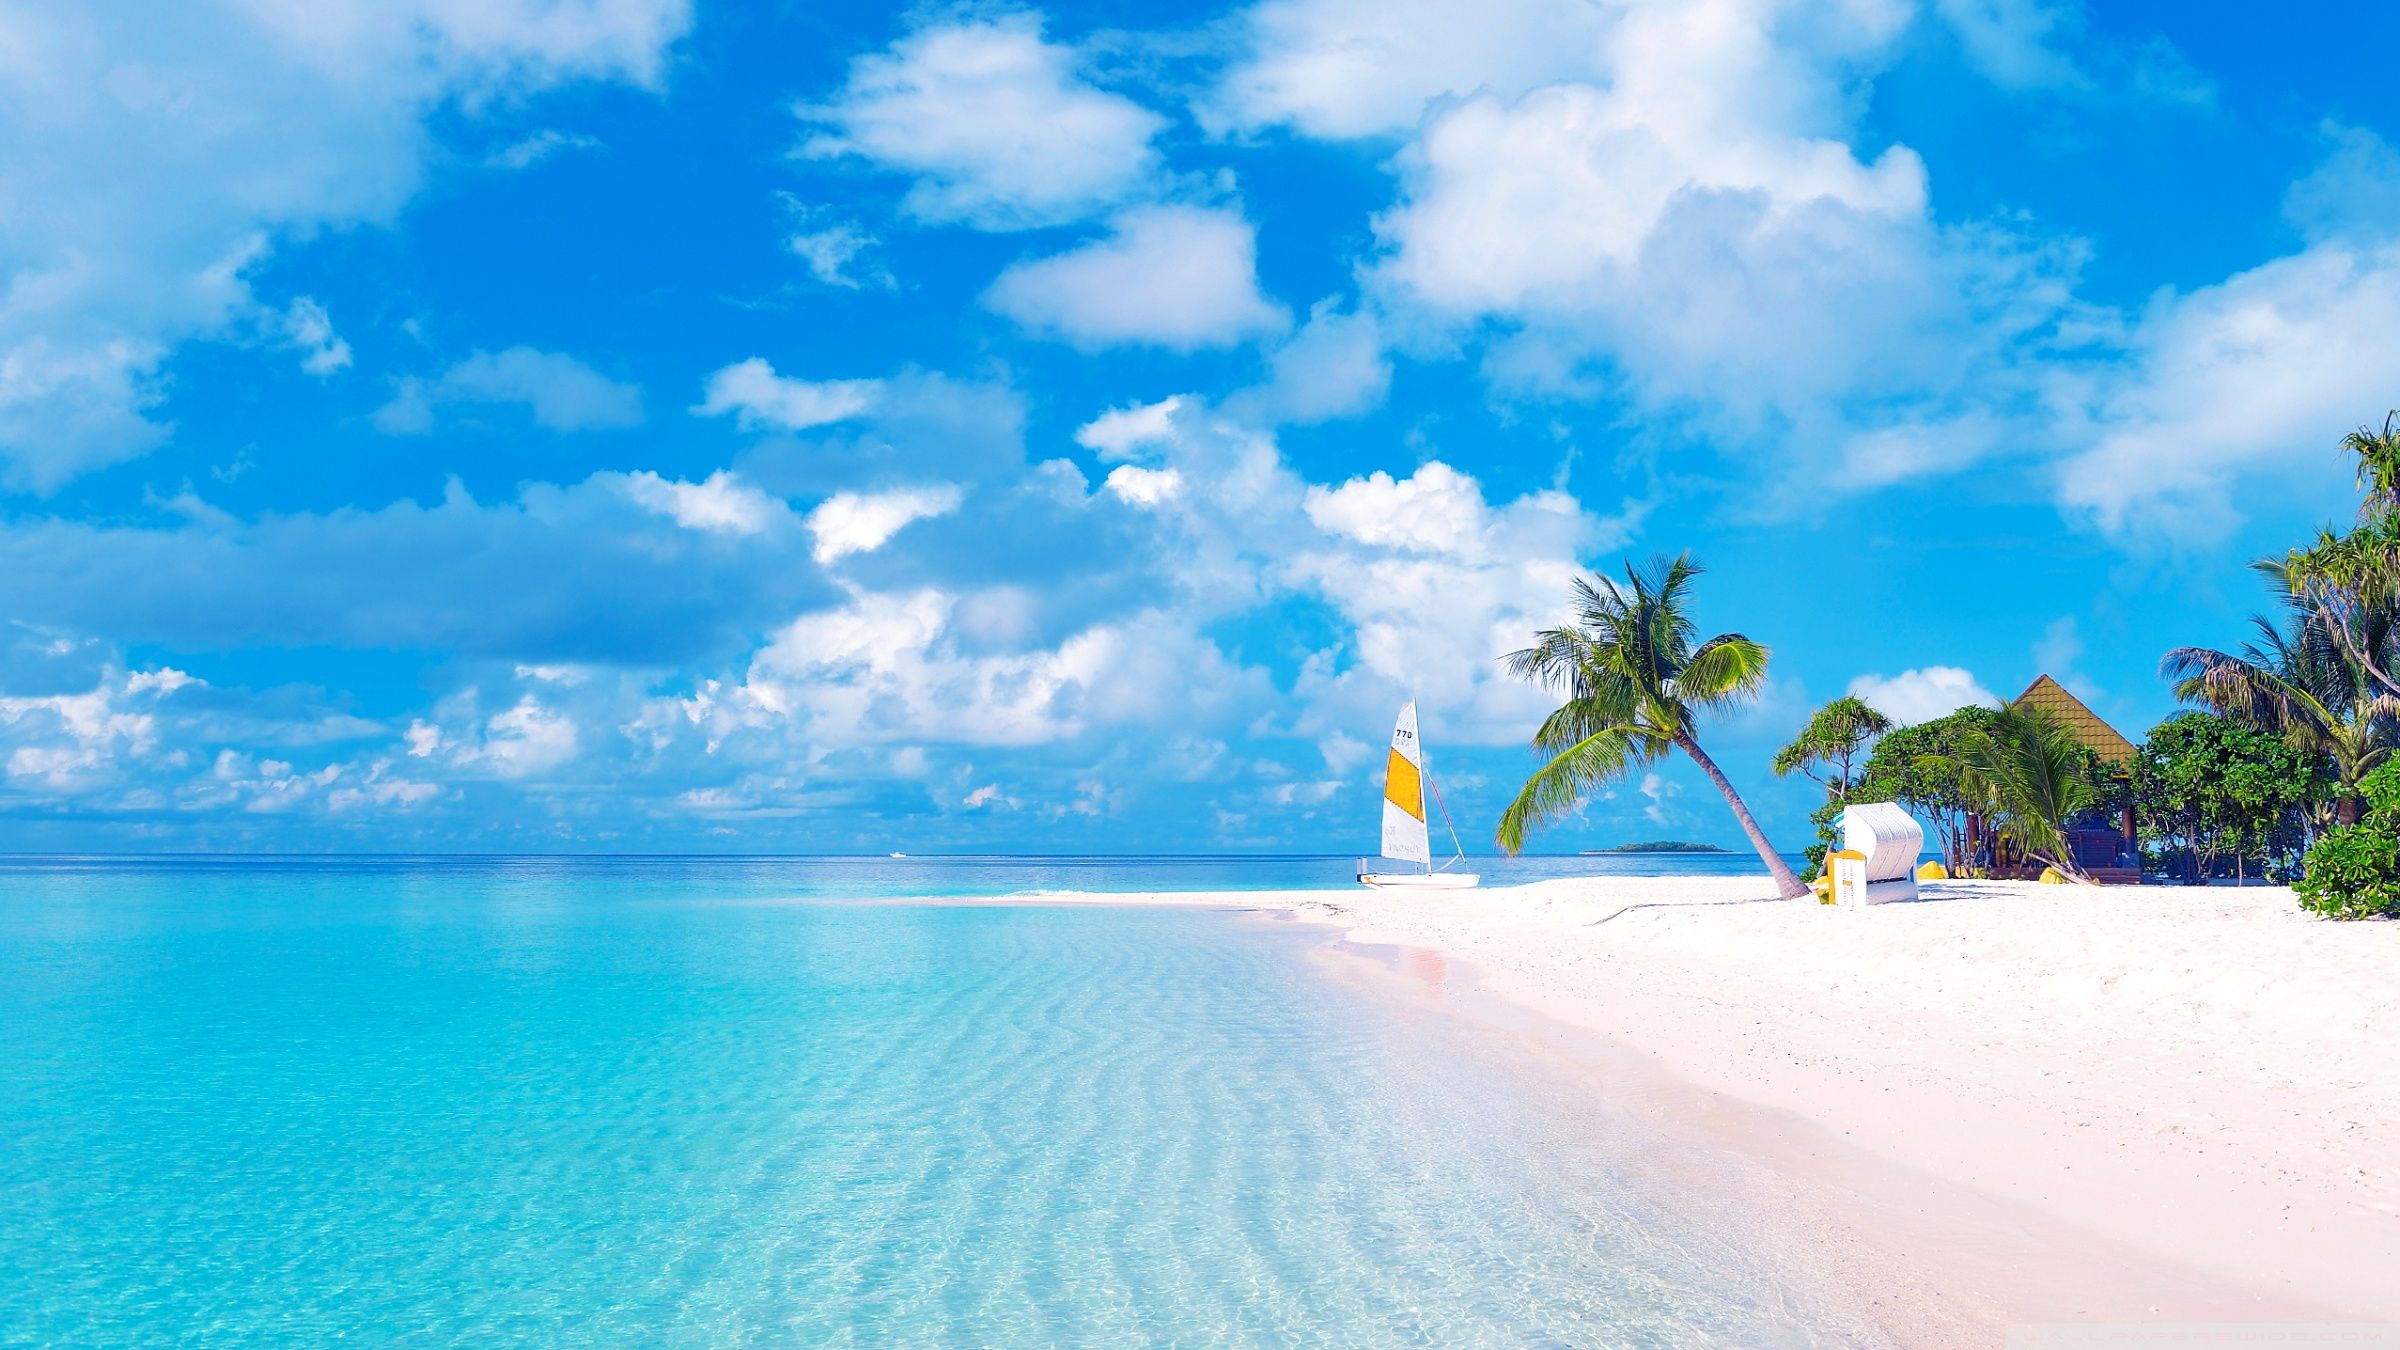 Exotic Travel Wallpapers Top Free Exotic Travel Backgrounds Wallpaperaccess